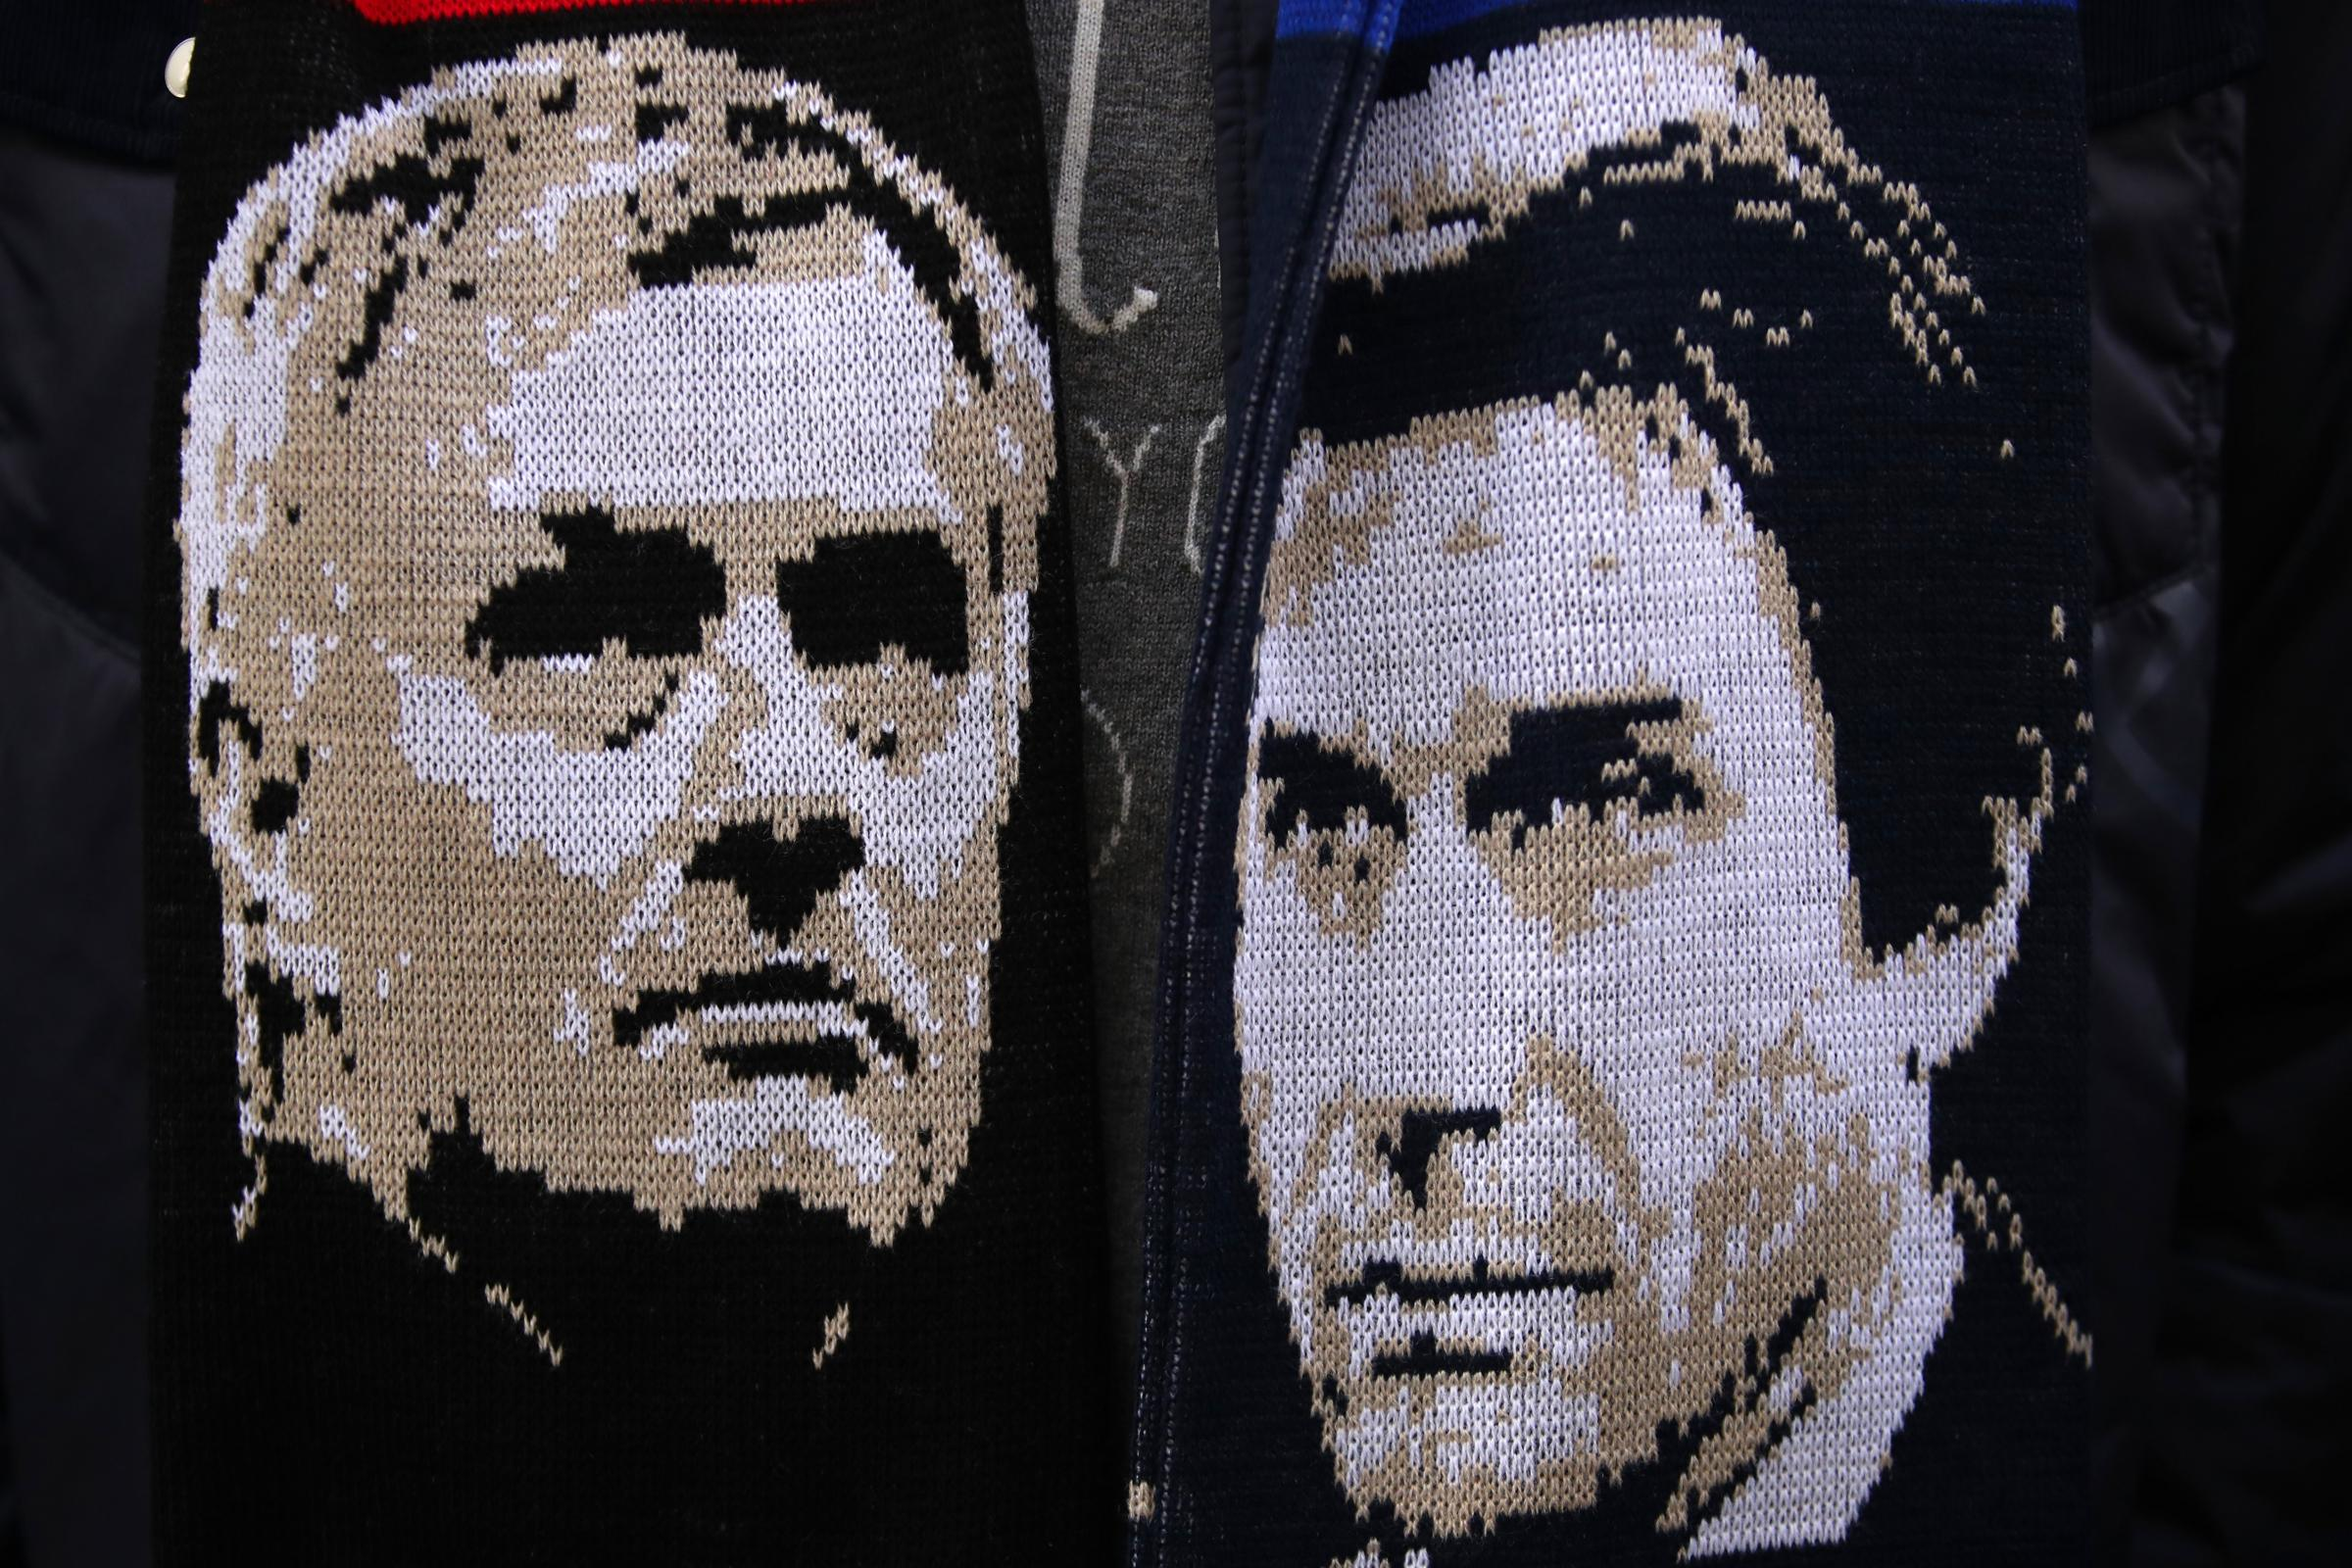 A general view of Chelsea manager Antonio Conte and Manchester United manager Jose Mourinho depicted on a scarf before the Premier League match at Stamford Bridge